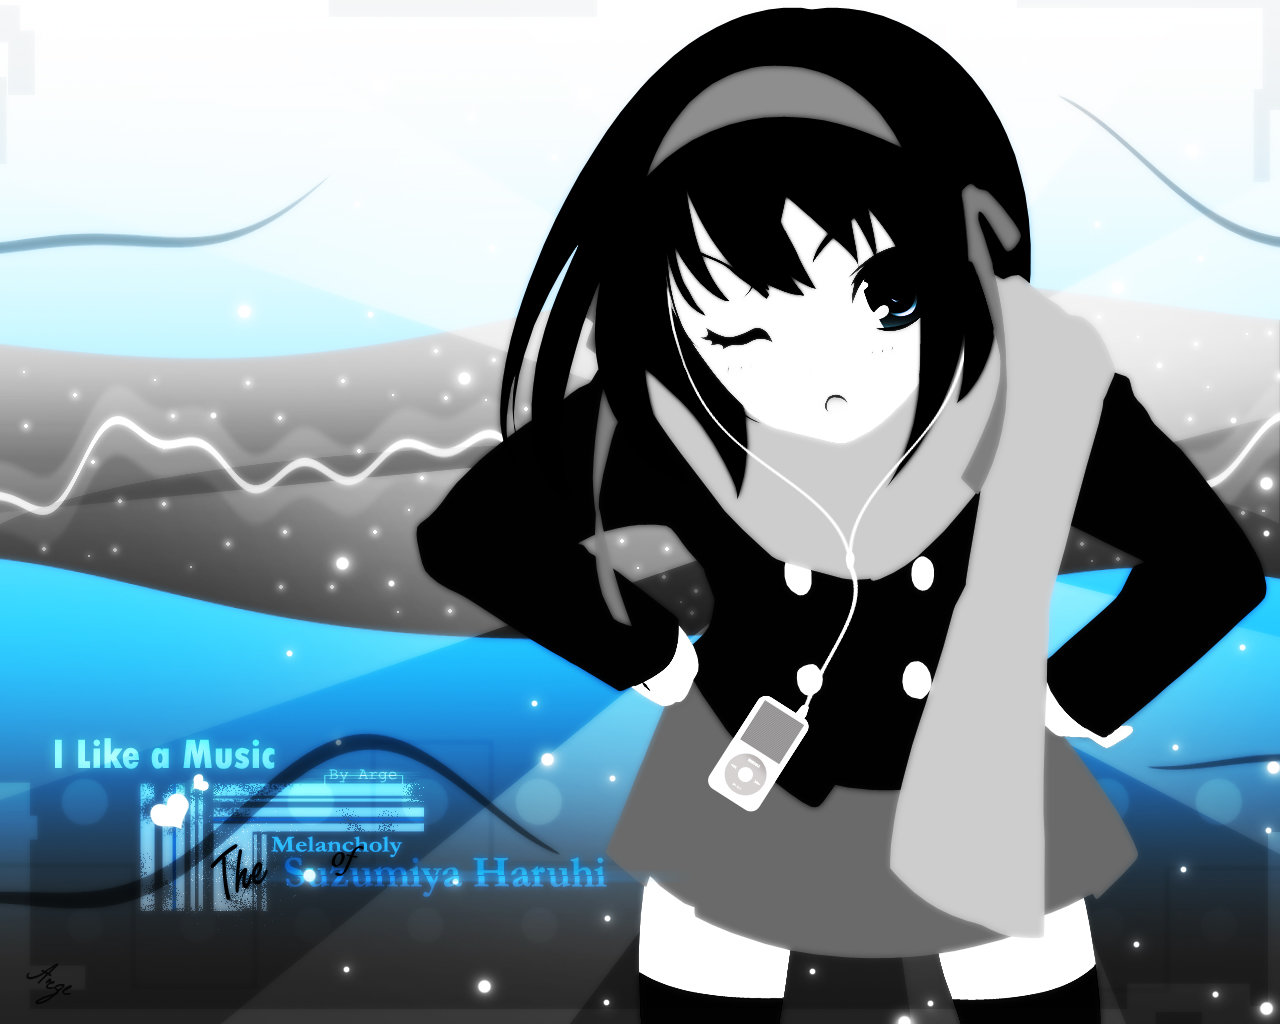 High resolution The Melancholy Of Haruhi Suzumiya hd 1280x1024 wallpaper ID:139527 for PC